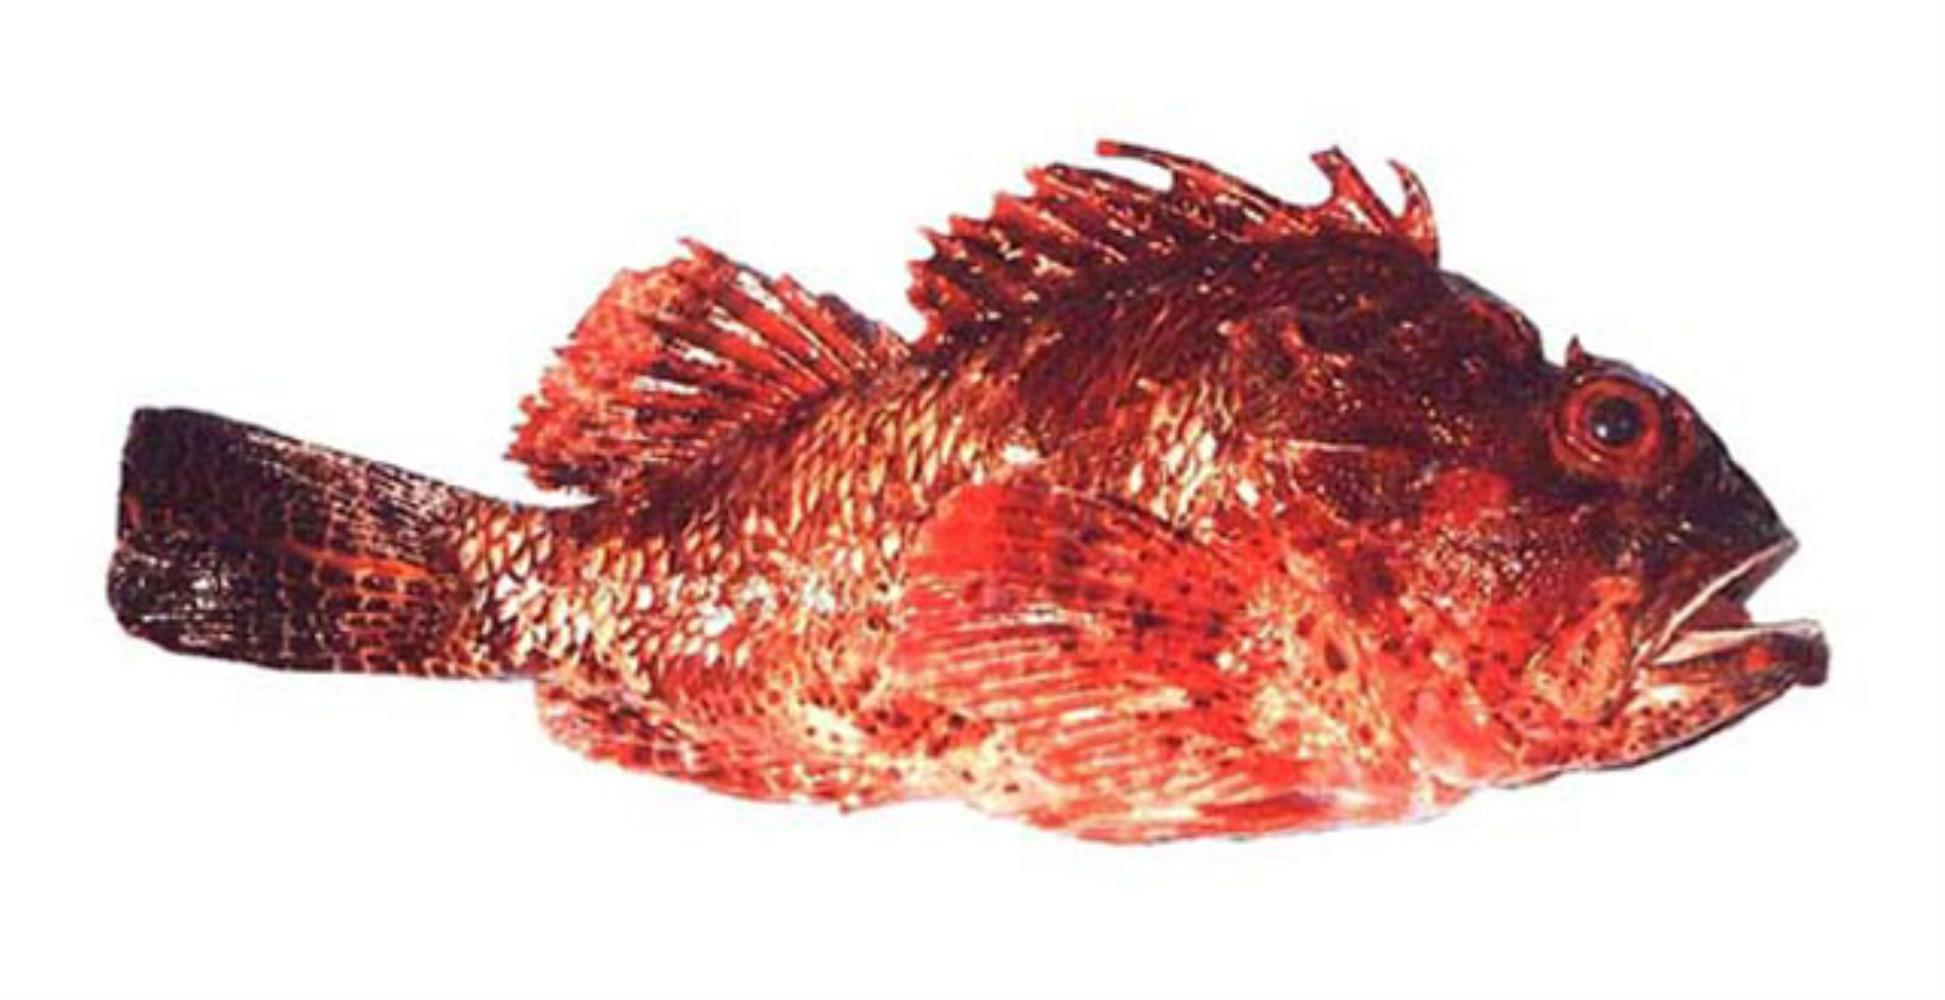 Western Red Scorpionfish